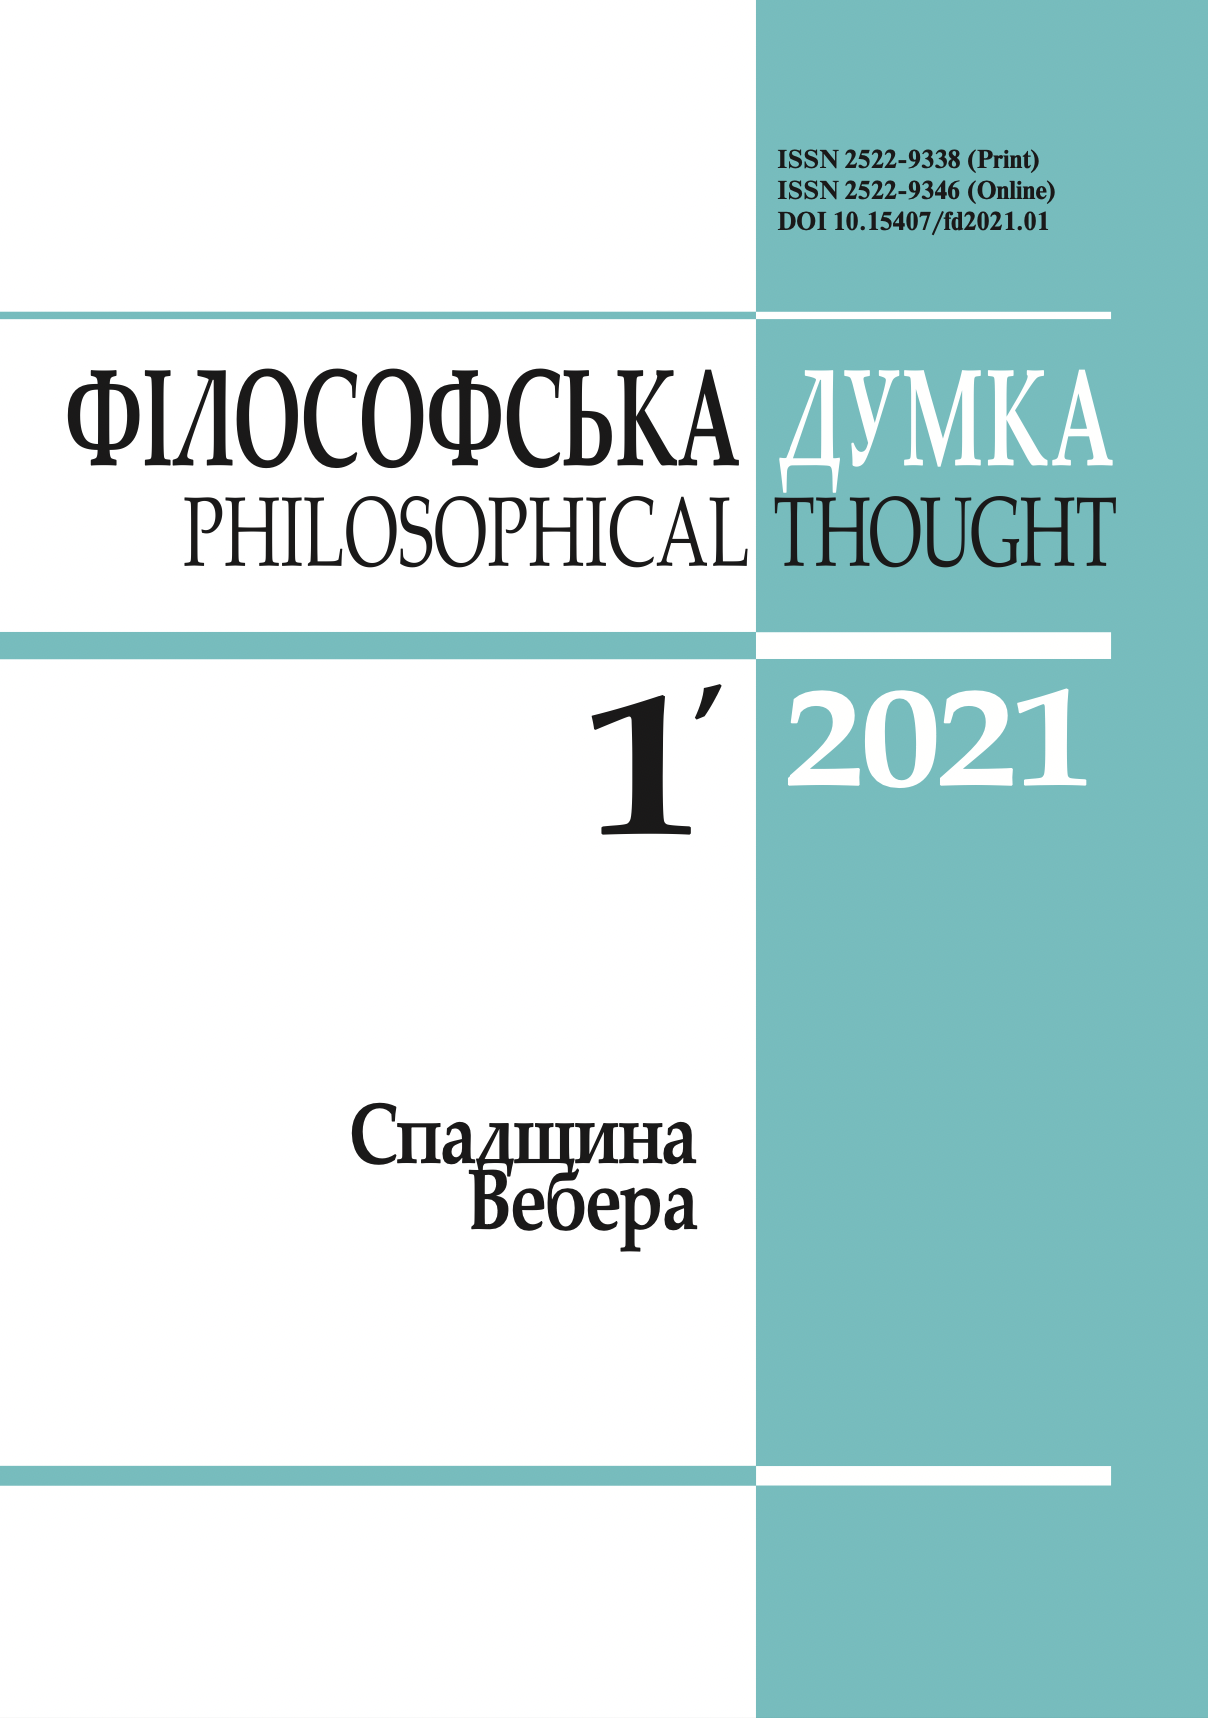 View No. 1 (2021): Philosophical thought